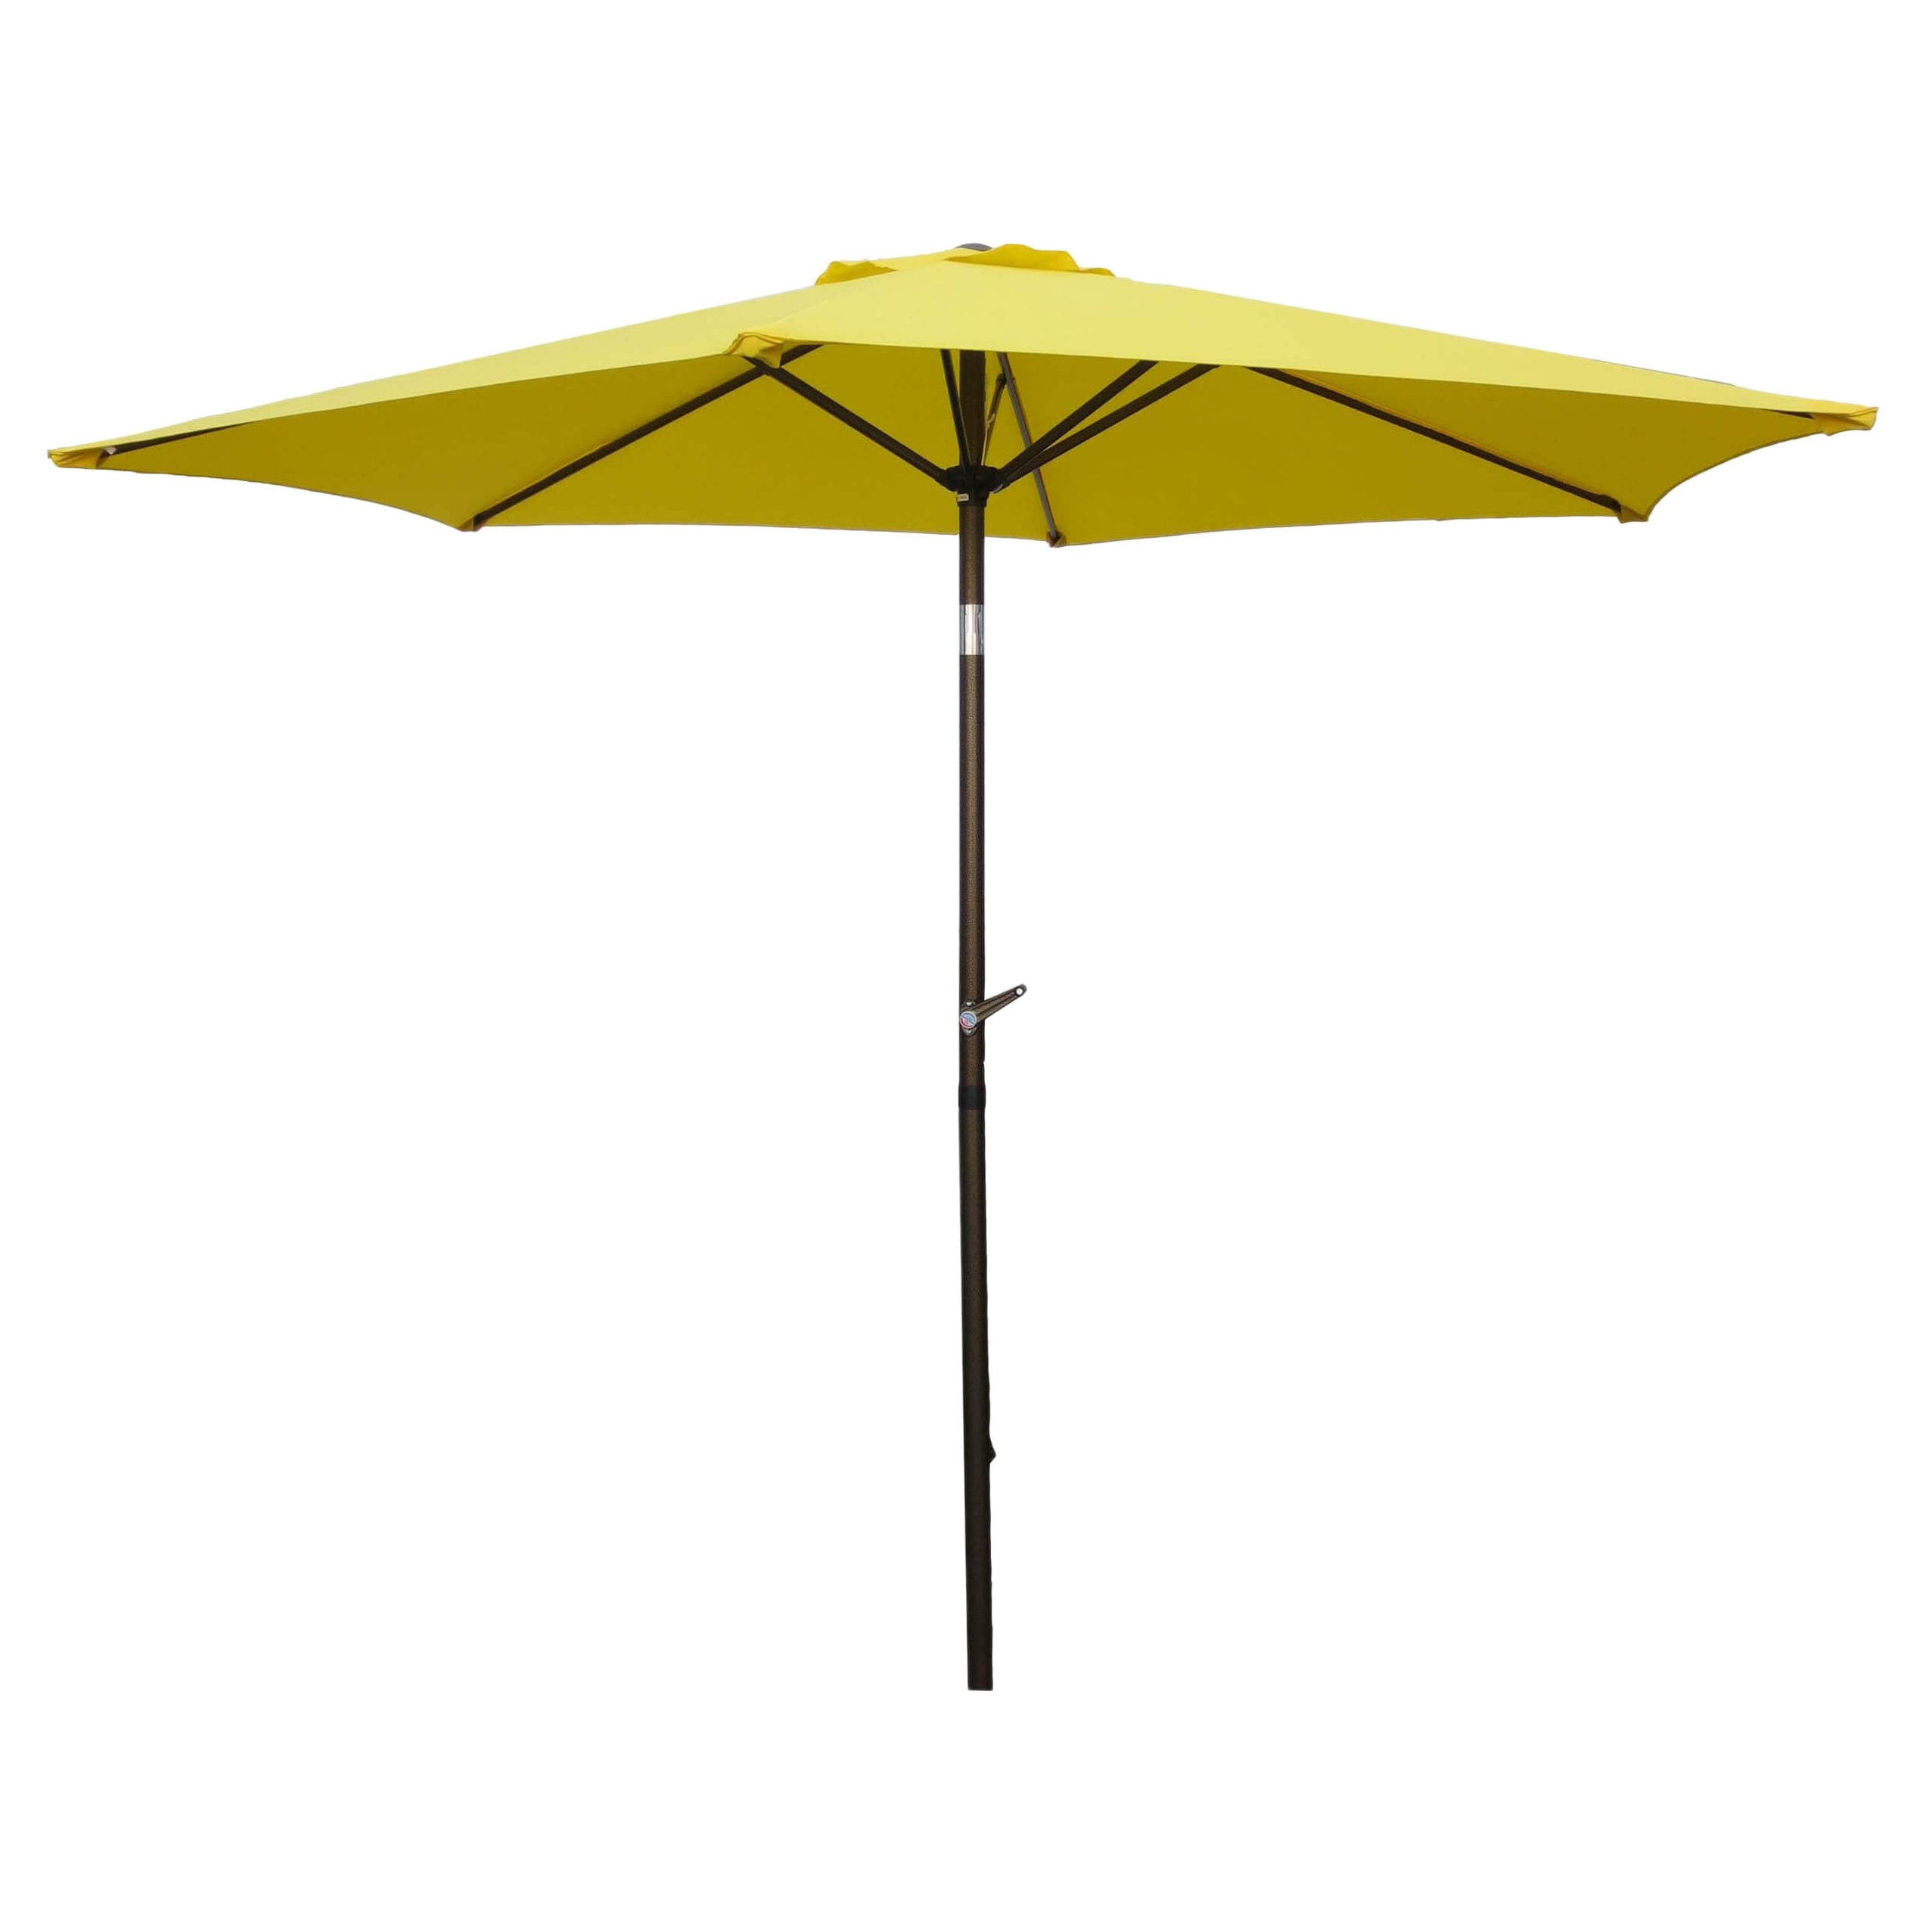 Most Recently Released Patio Umbrella 8 Foot Pertaining To Frome Market Umbrellas (View 8 of 20)